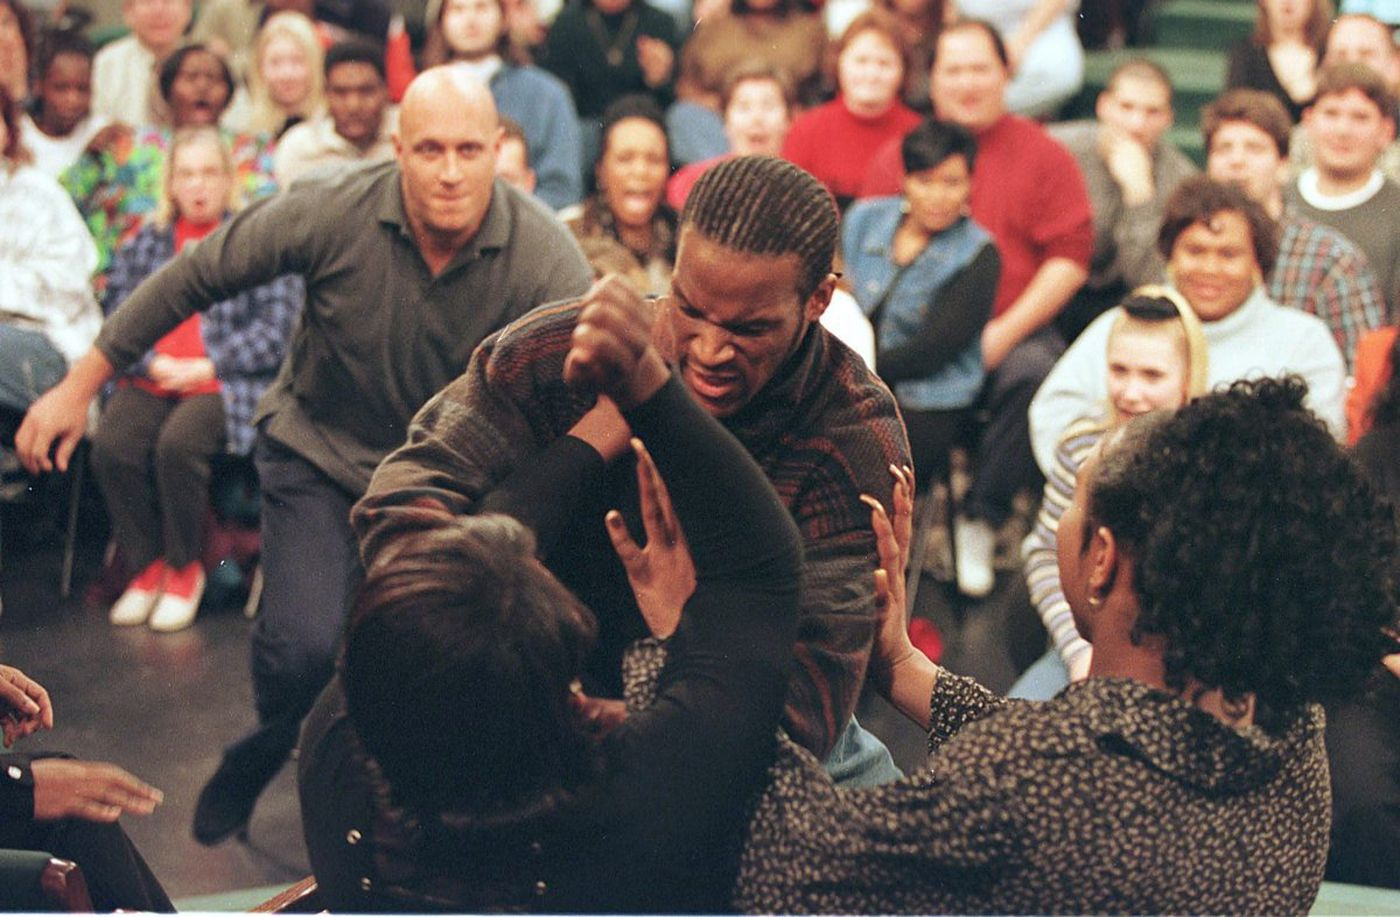 Image result for Jerry Springer show fights, photos